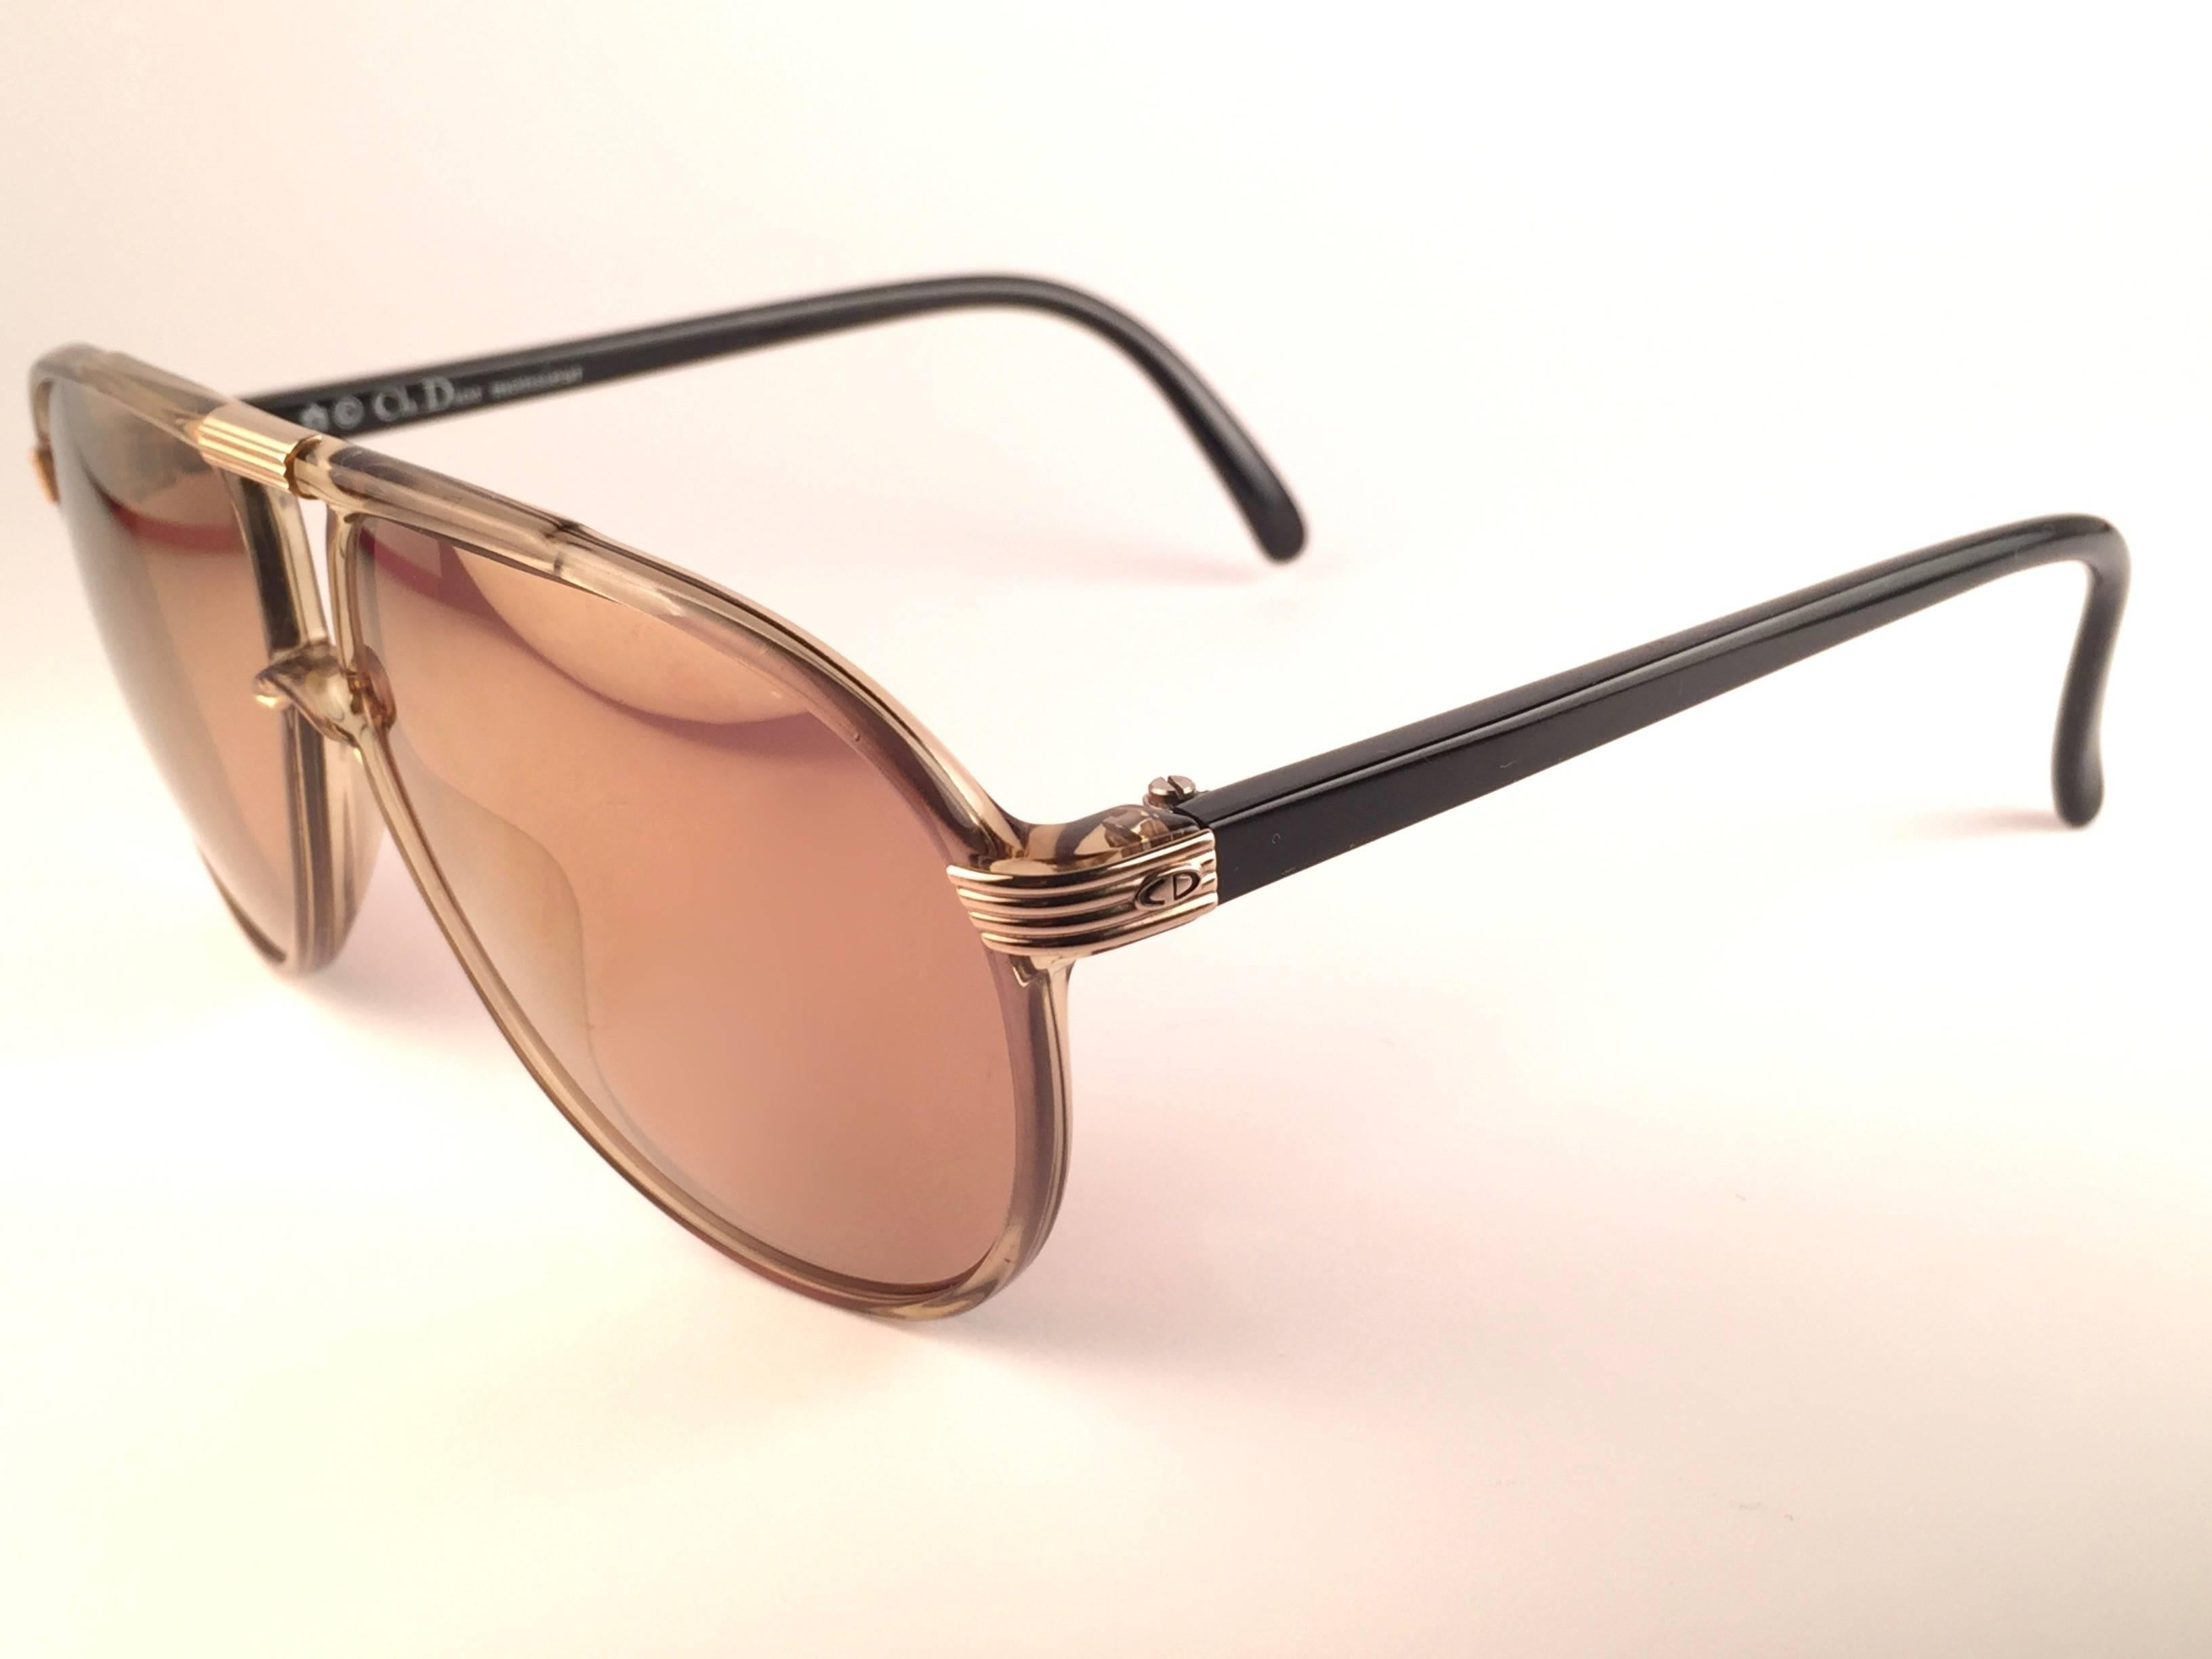 a5d8a80d0cf New Vintage Christian Dior Monsieur 2300 20 Optyl Gold Mirror 1970  Sunglasses For Sale at 1stdibs